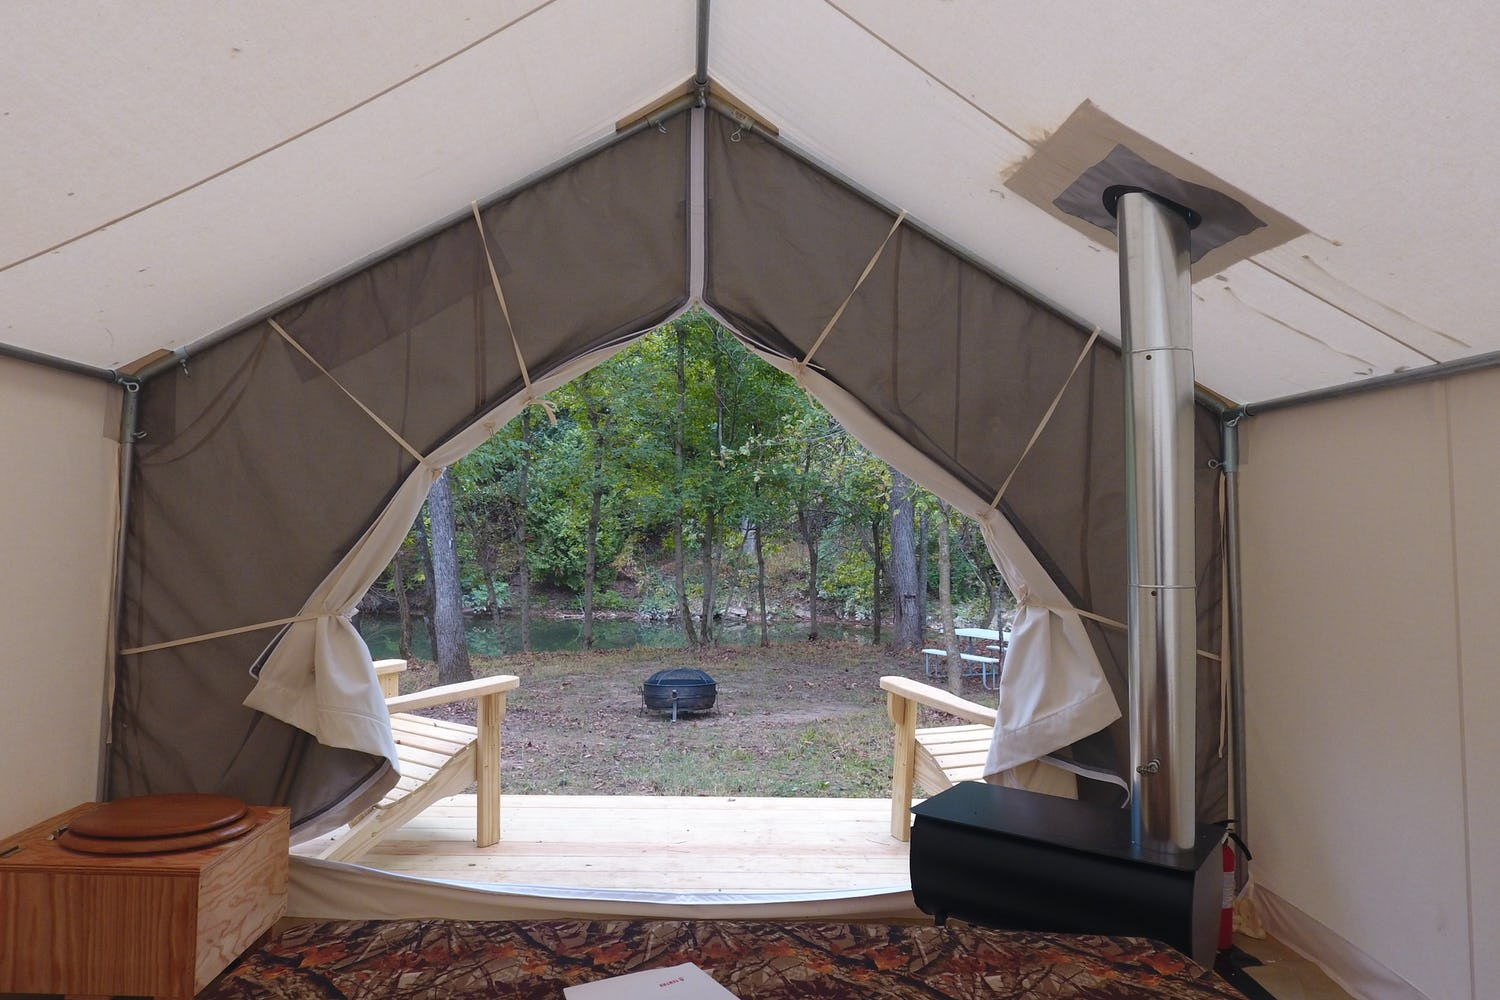 View of campsite from interior of canvas glamping tent of a campsite with a wood stove in Virginia.